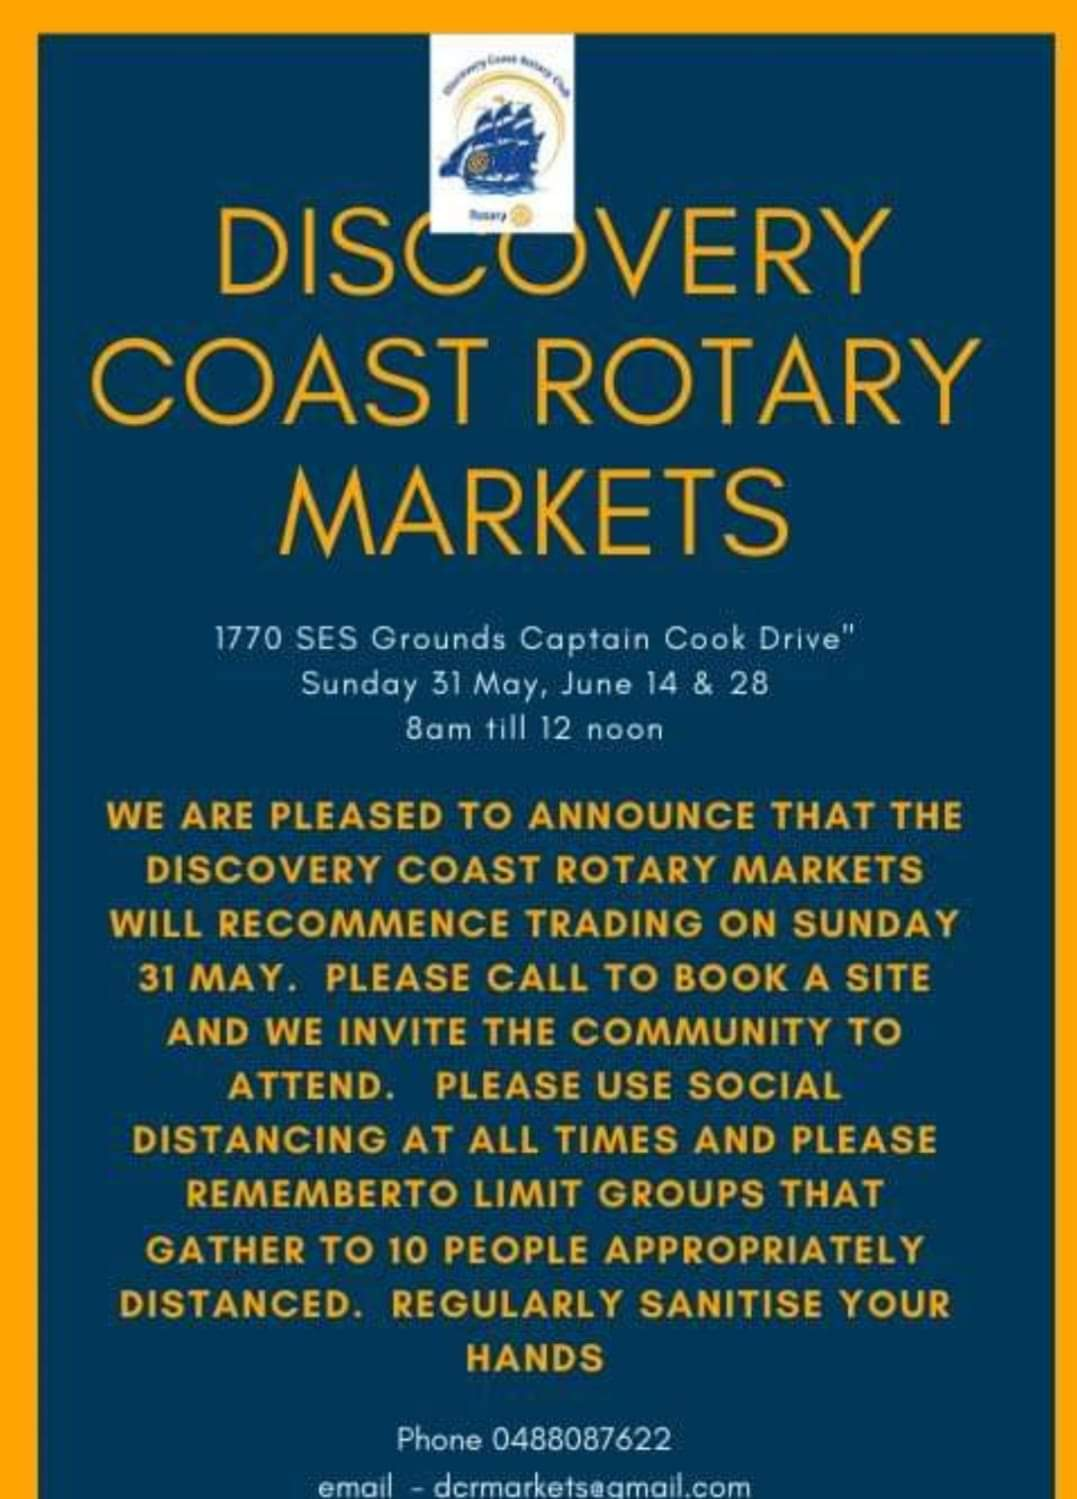 Discovery Coast Rotary markets are back